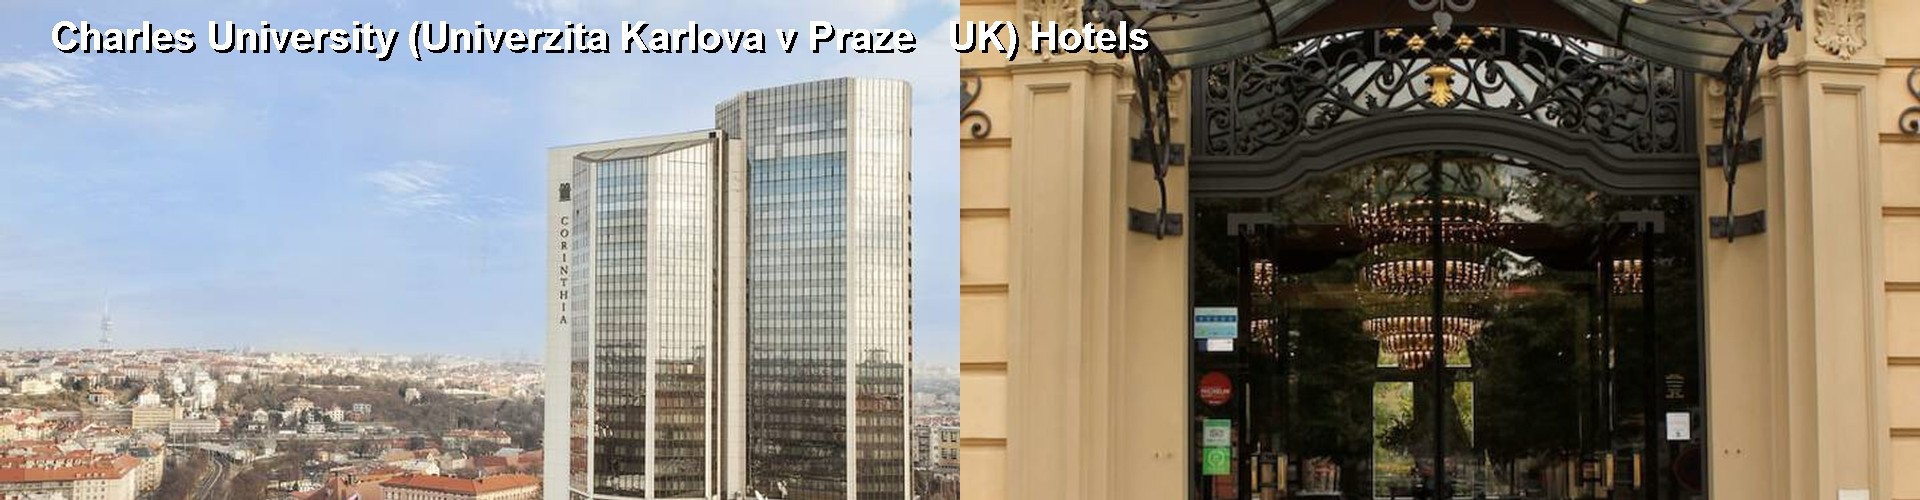 5 Best Hotels near Charles University (Univerzita Karlova v Praze UK)